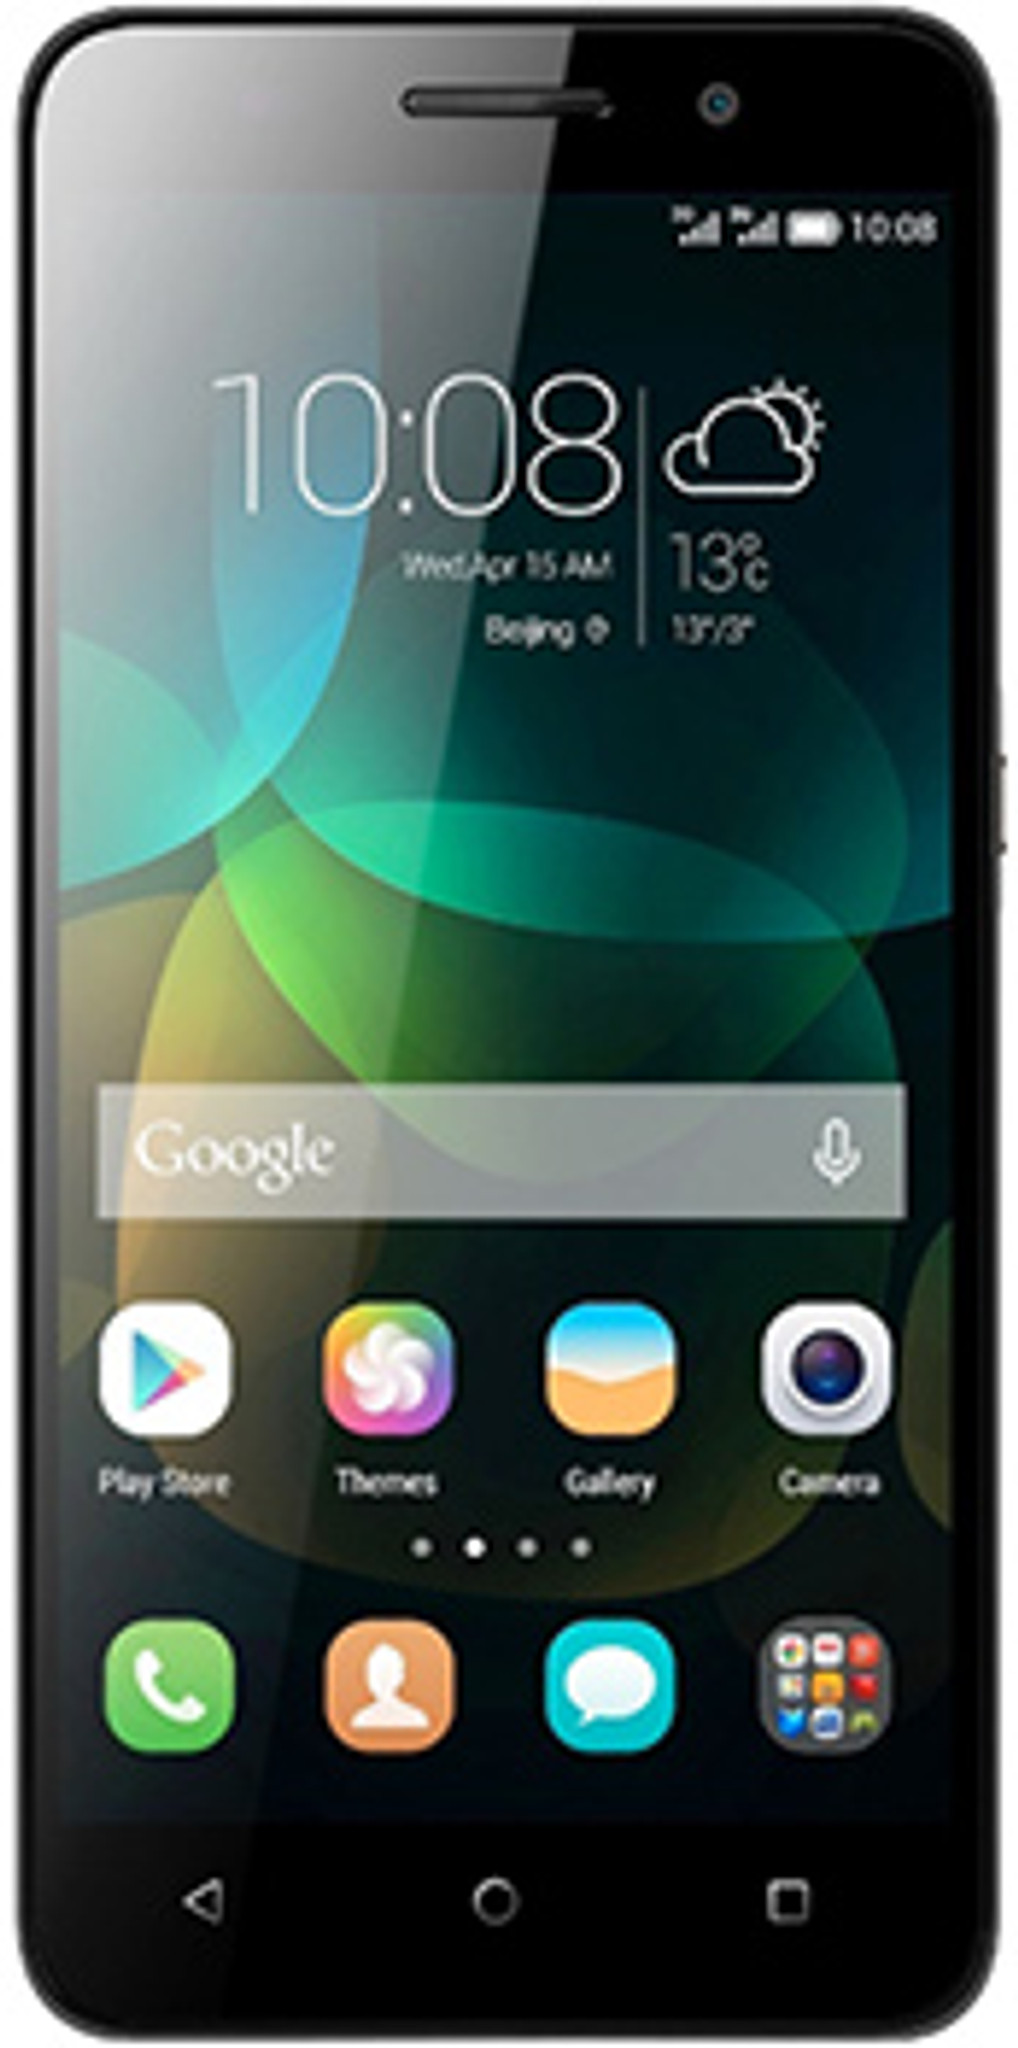 Huawei Honor 4C - Black (One Year Official Warranty)